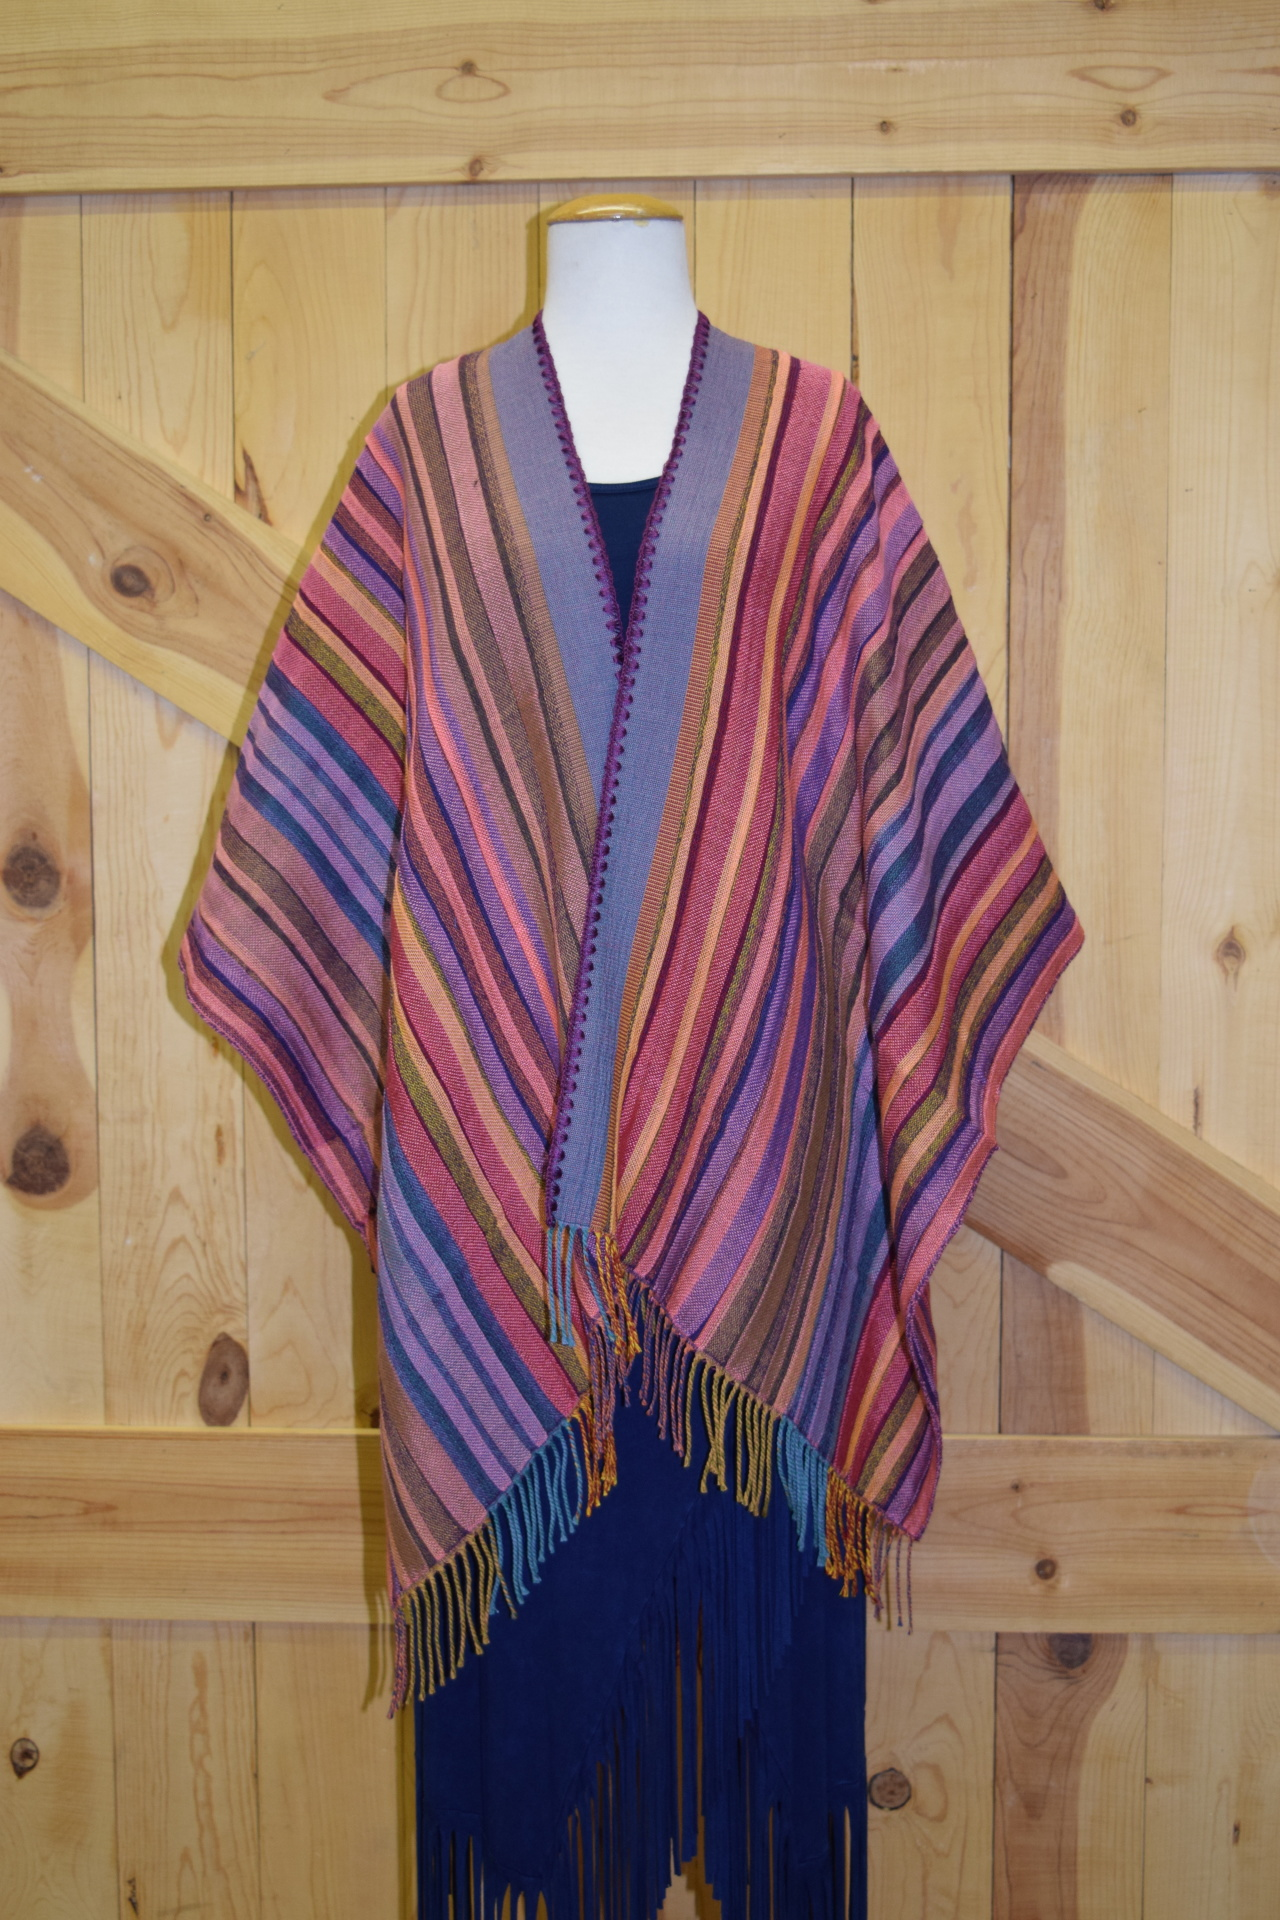 #100S - COL. 04 - PINK SERAPE STRIPE w/ purple stitch - O/S - $169.95